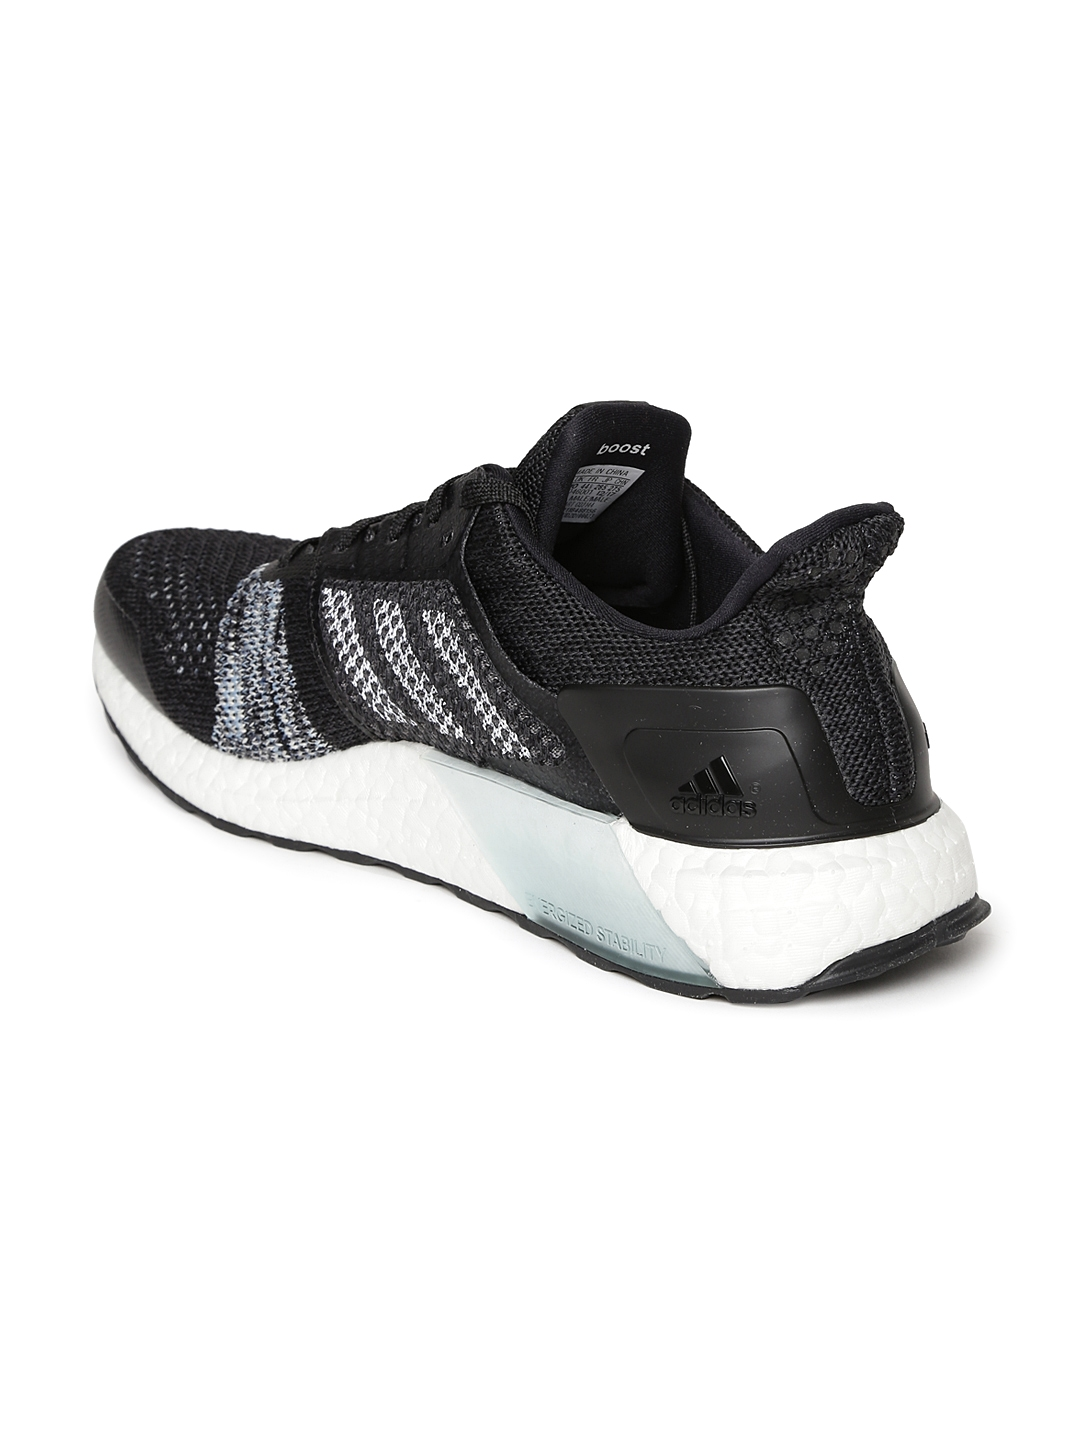 new style 38769 01352 ADIDAS Men Black UltraBoost ST Running Shoes